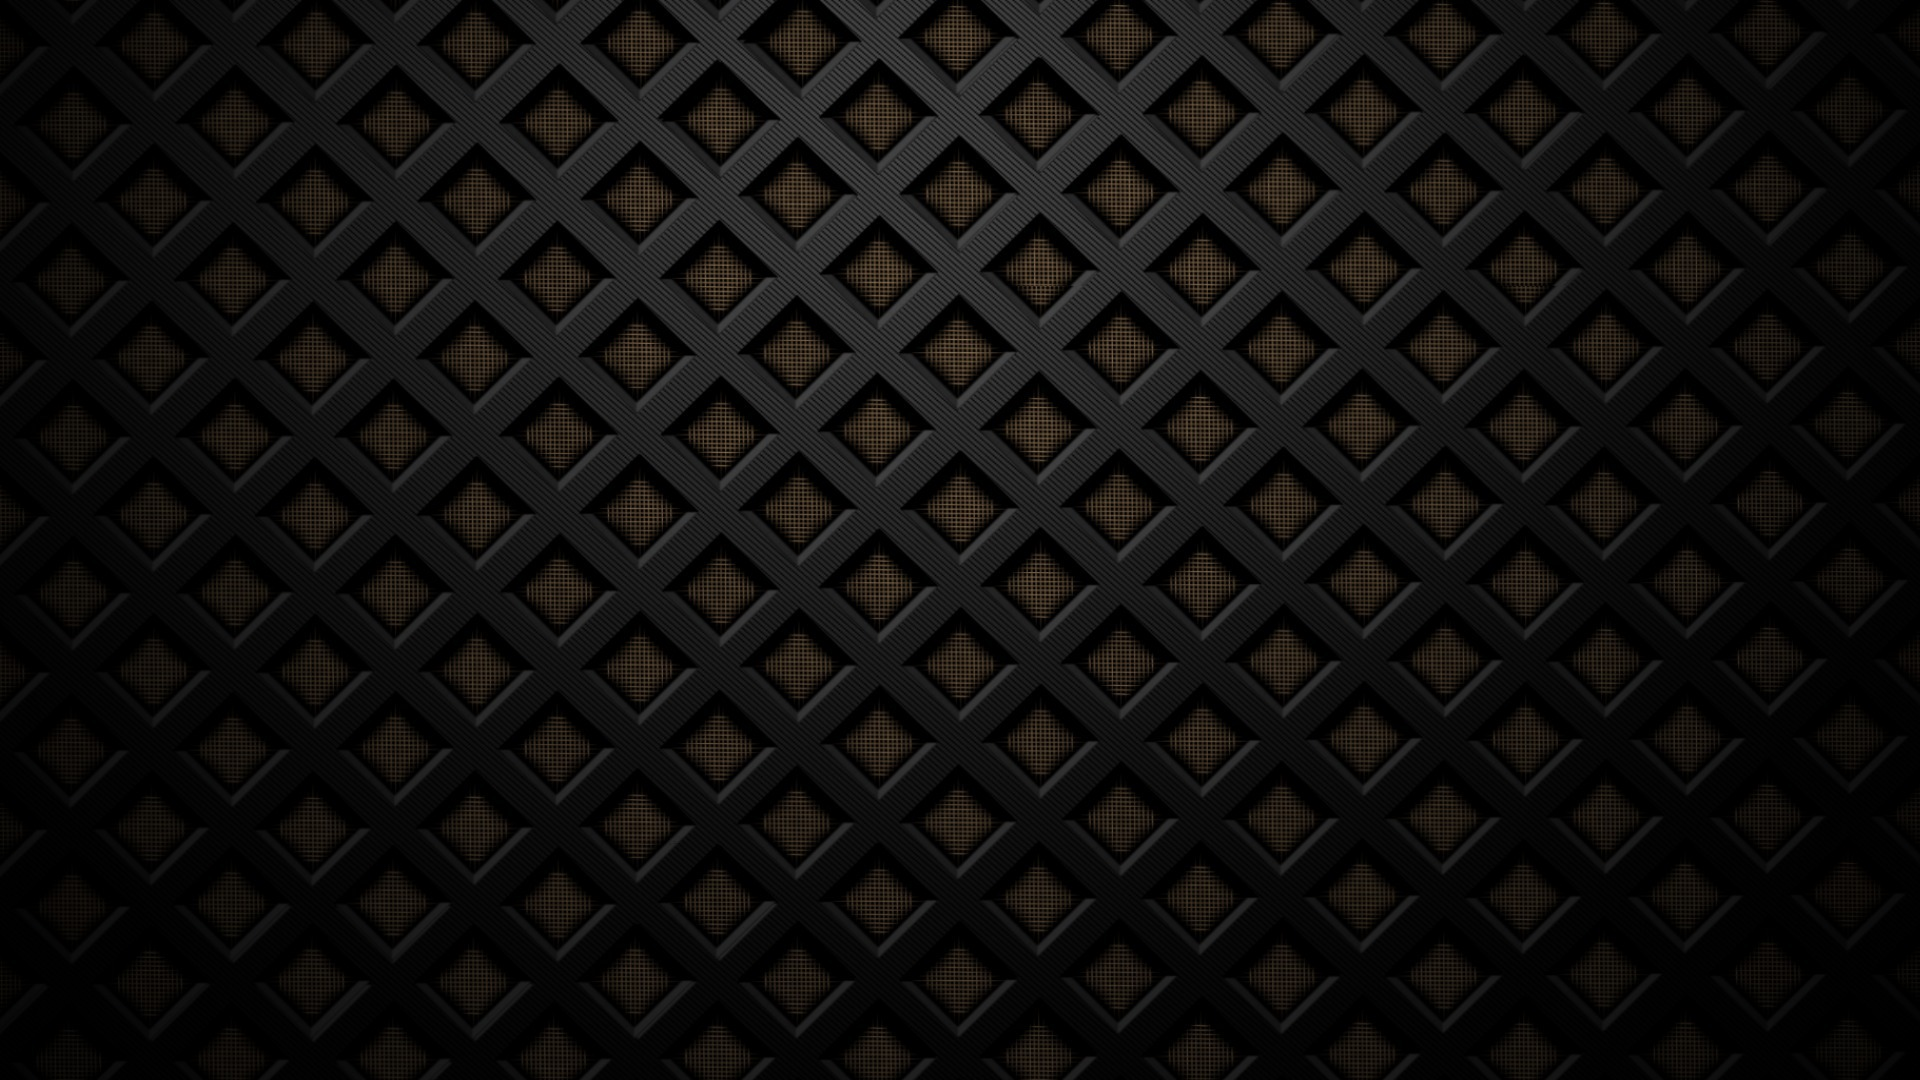 Black Texture Wallpaper Pc Wallpaper WallpaperLepi 1920x1080